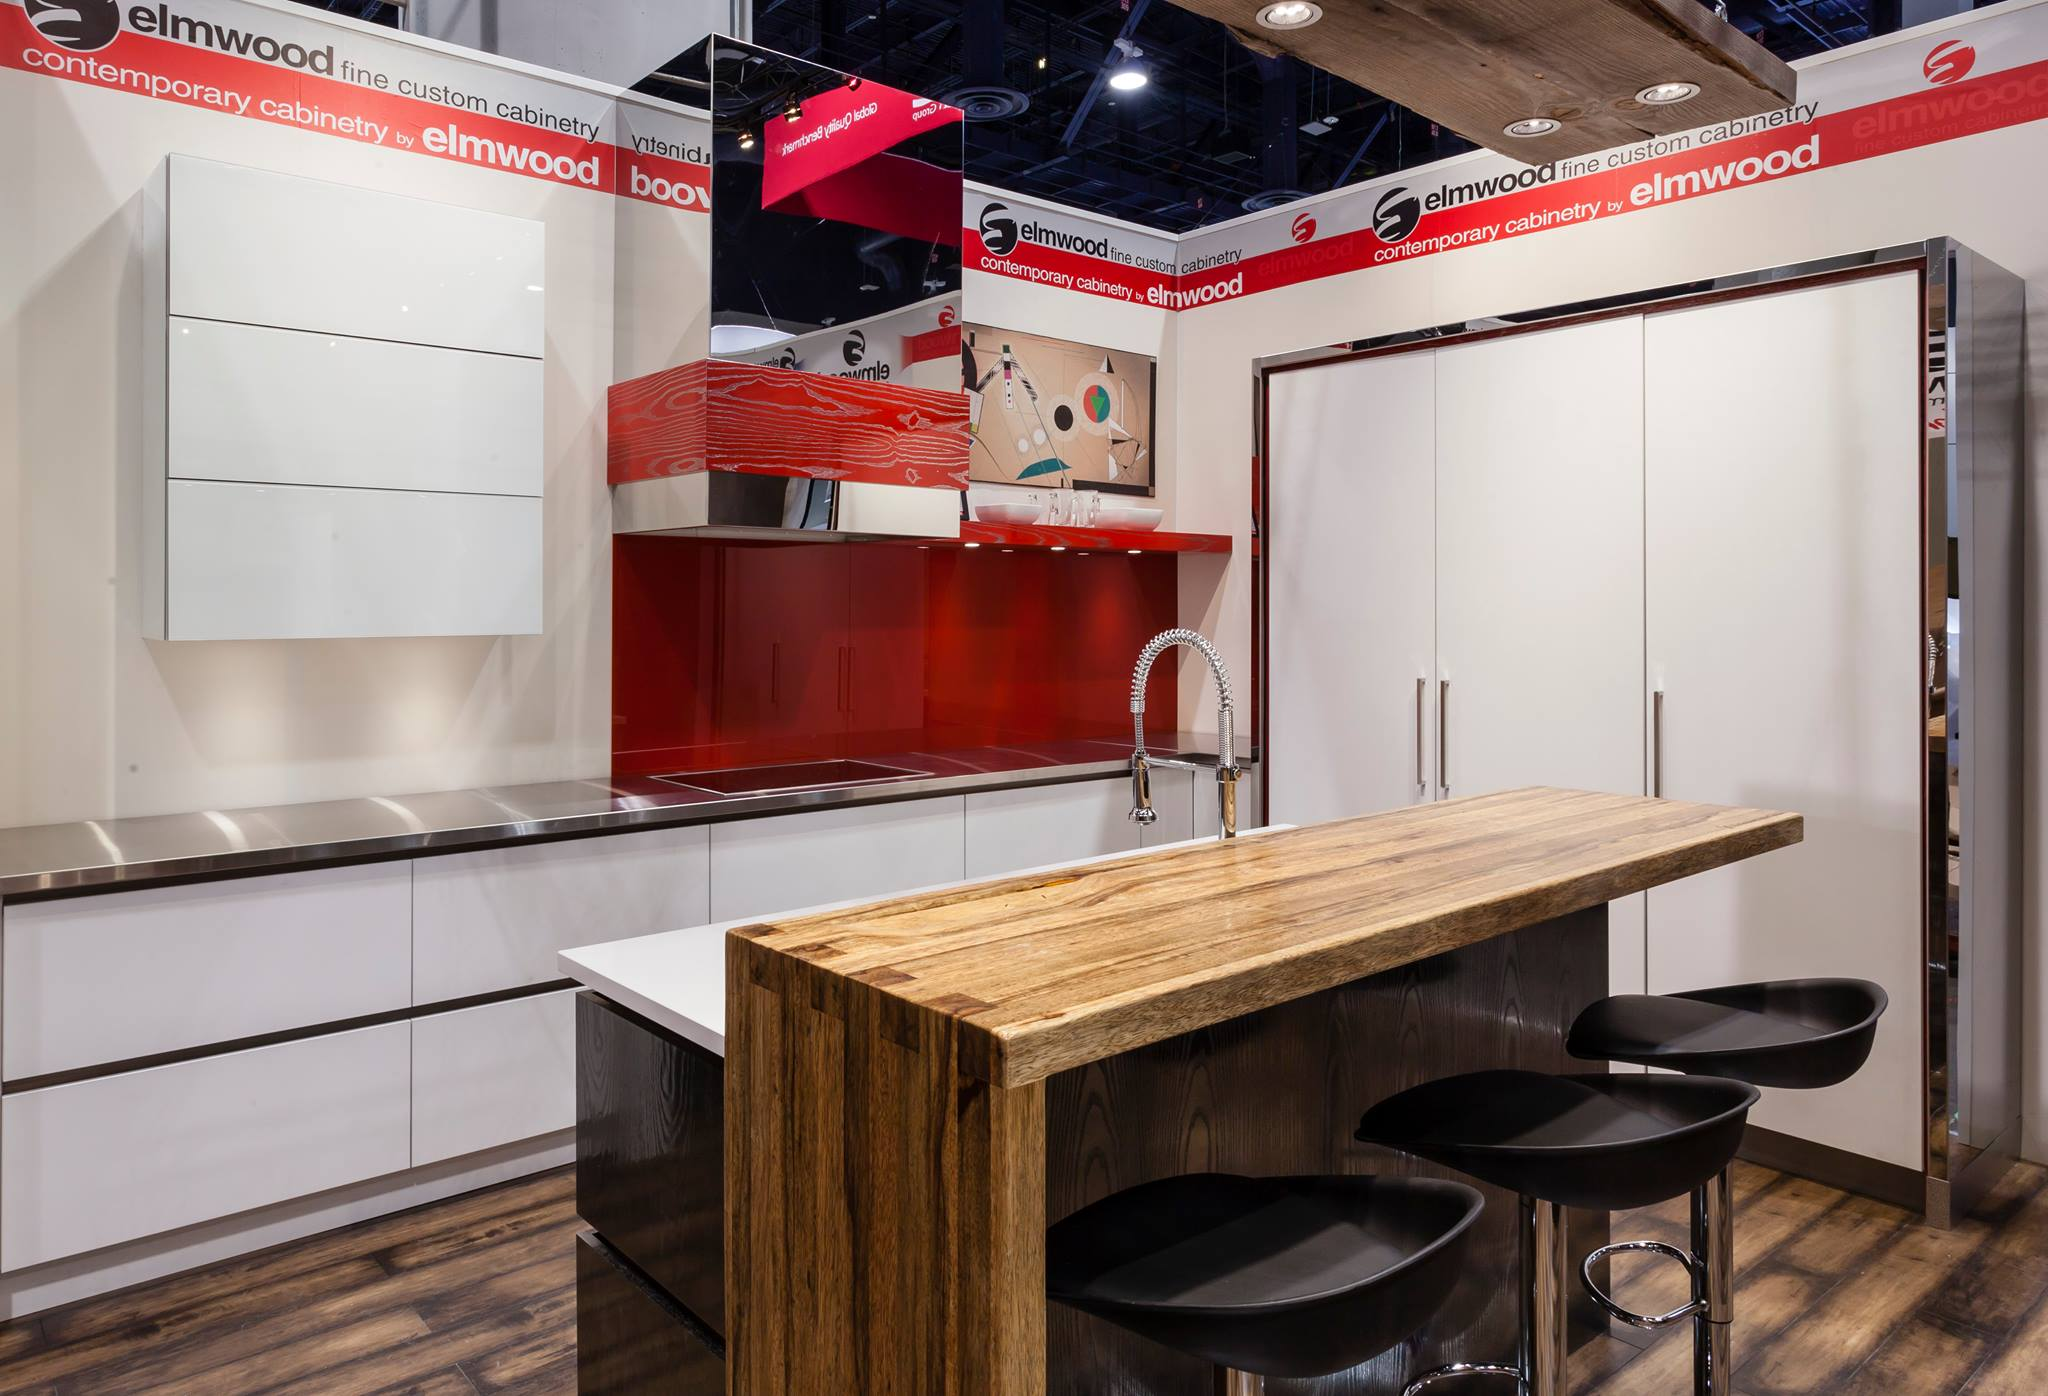 Grothouse wood countertops in Elmwood Custom Cabinetry display at KBIS 2015